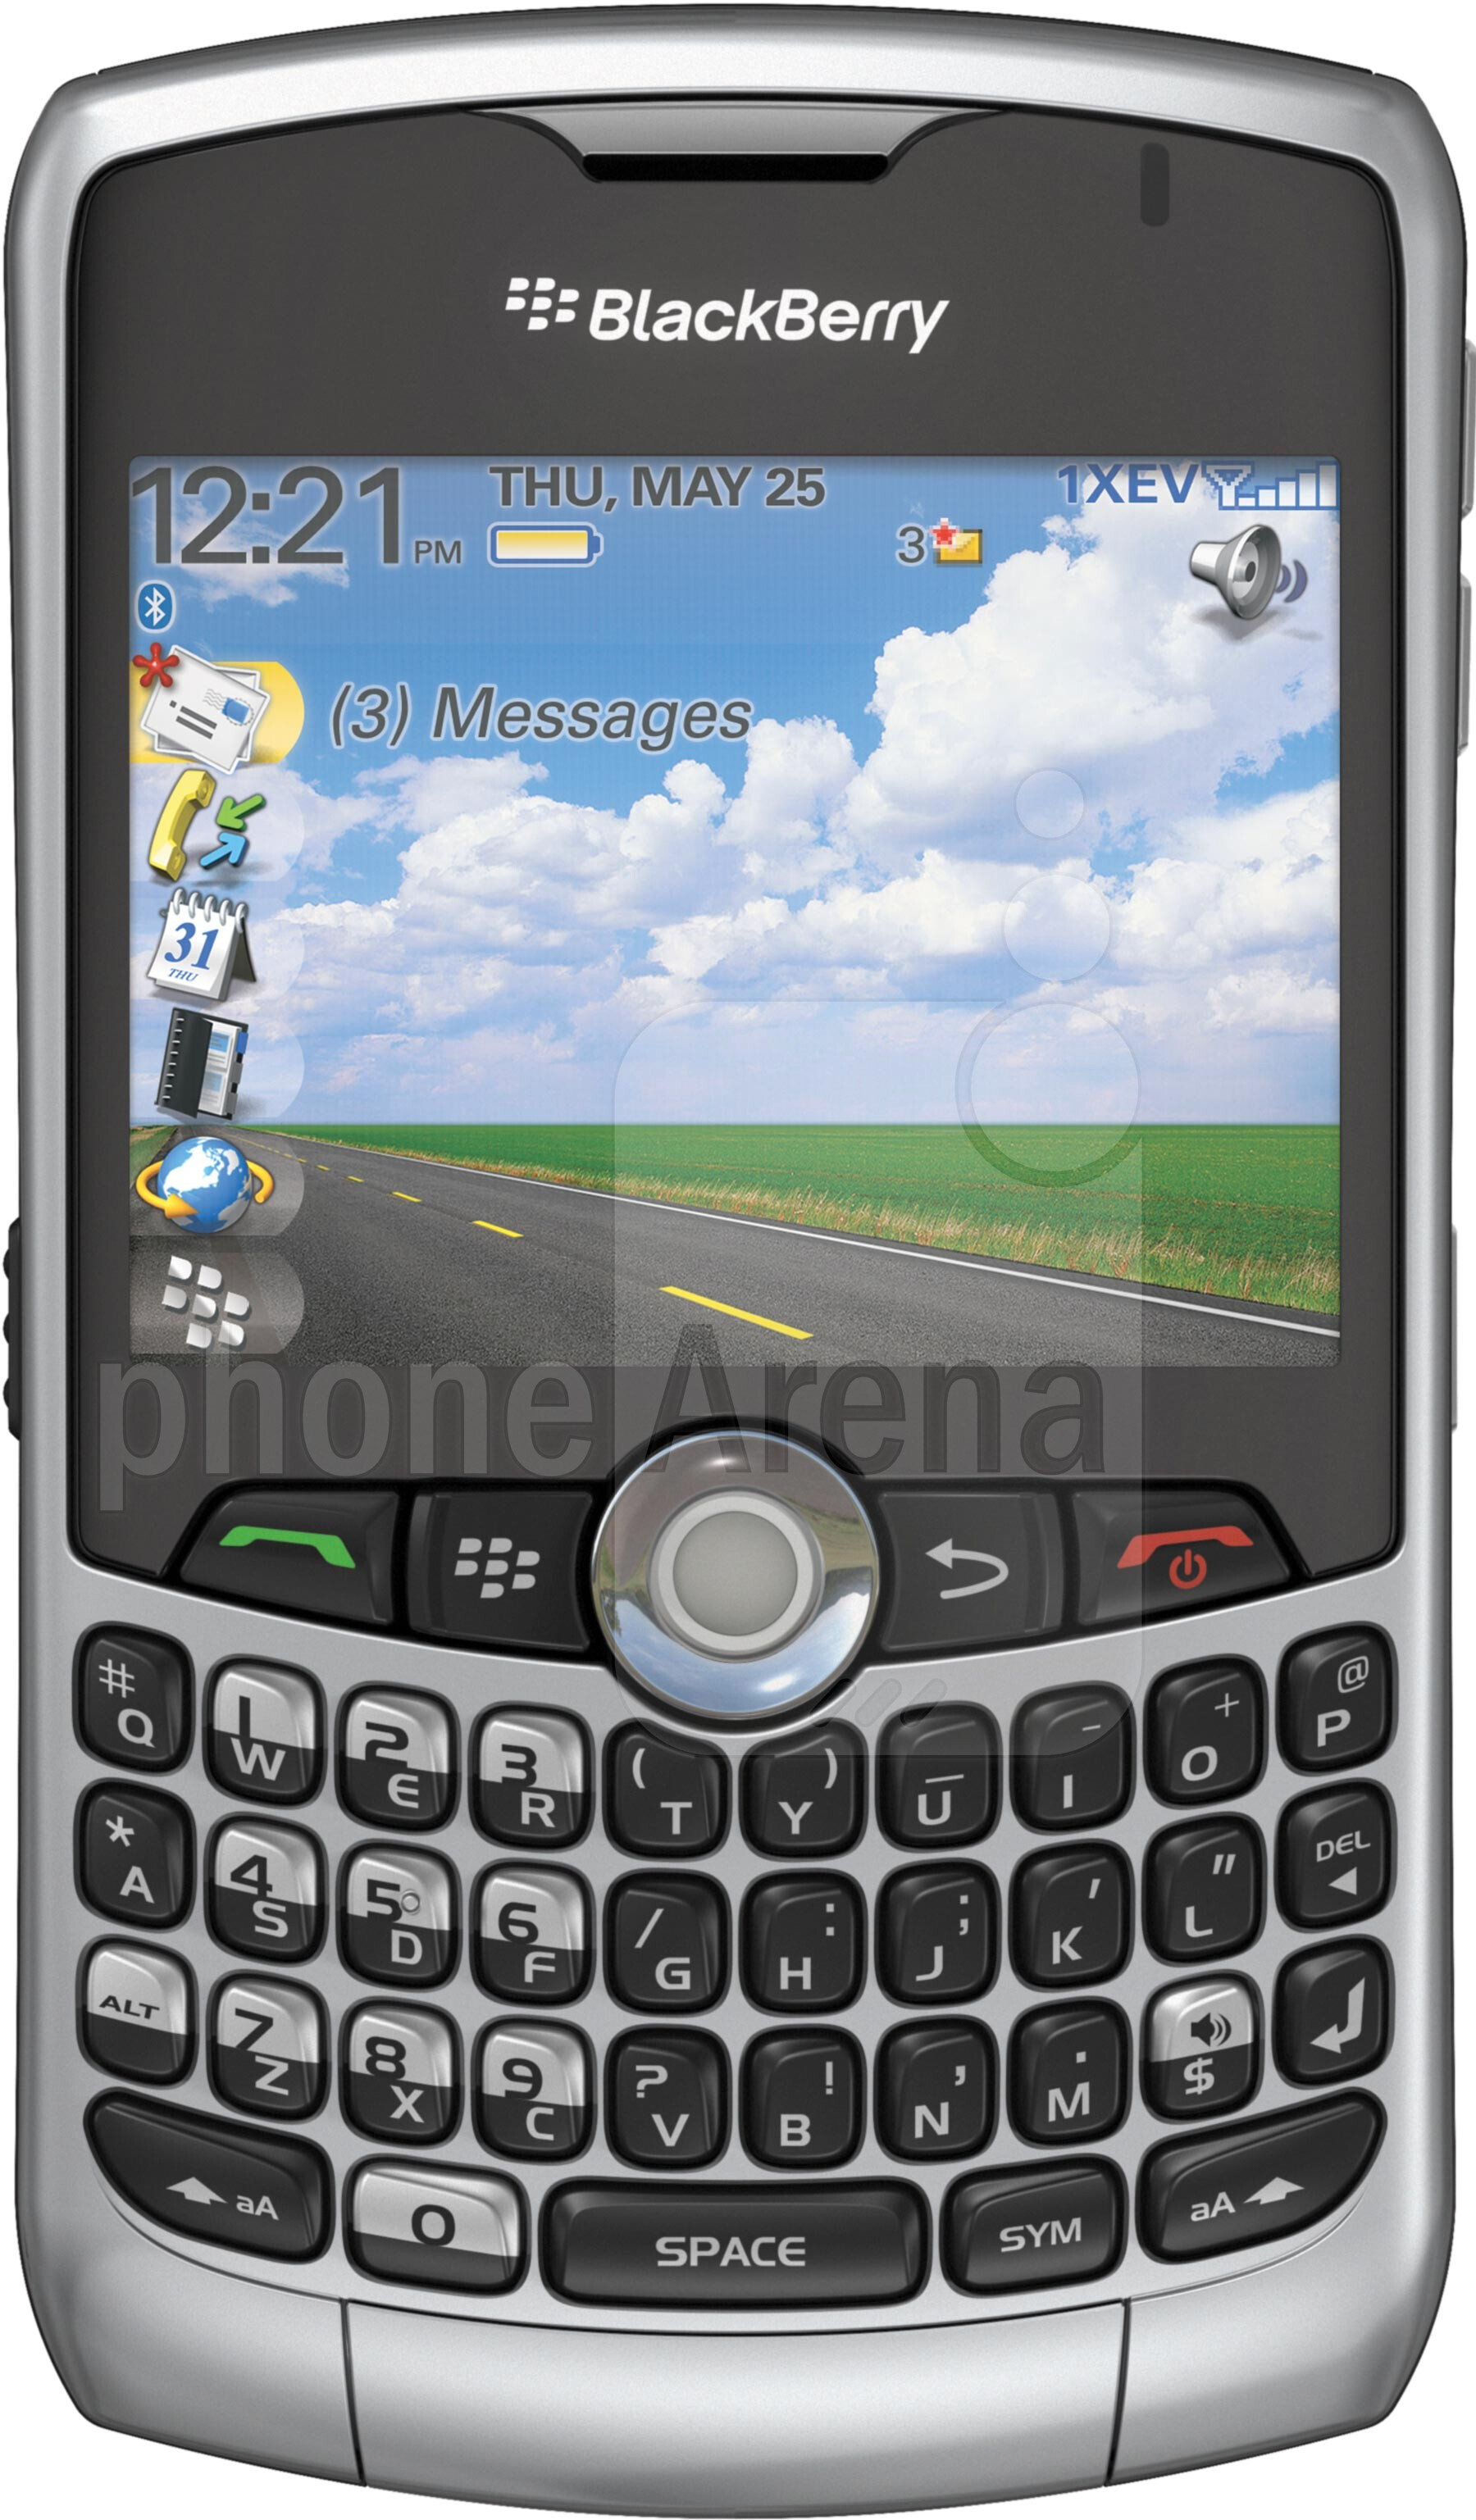 blackberry curve 8330 size real life visualization and comparison rh phonearena com Verizon BlackBerry BlackBerry 8330 Applications